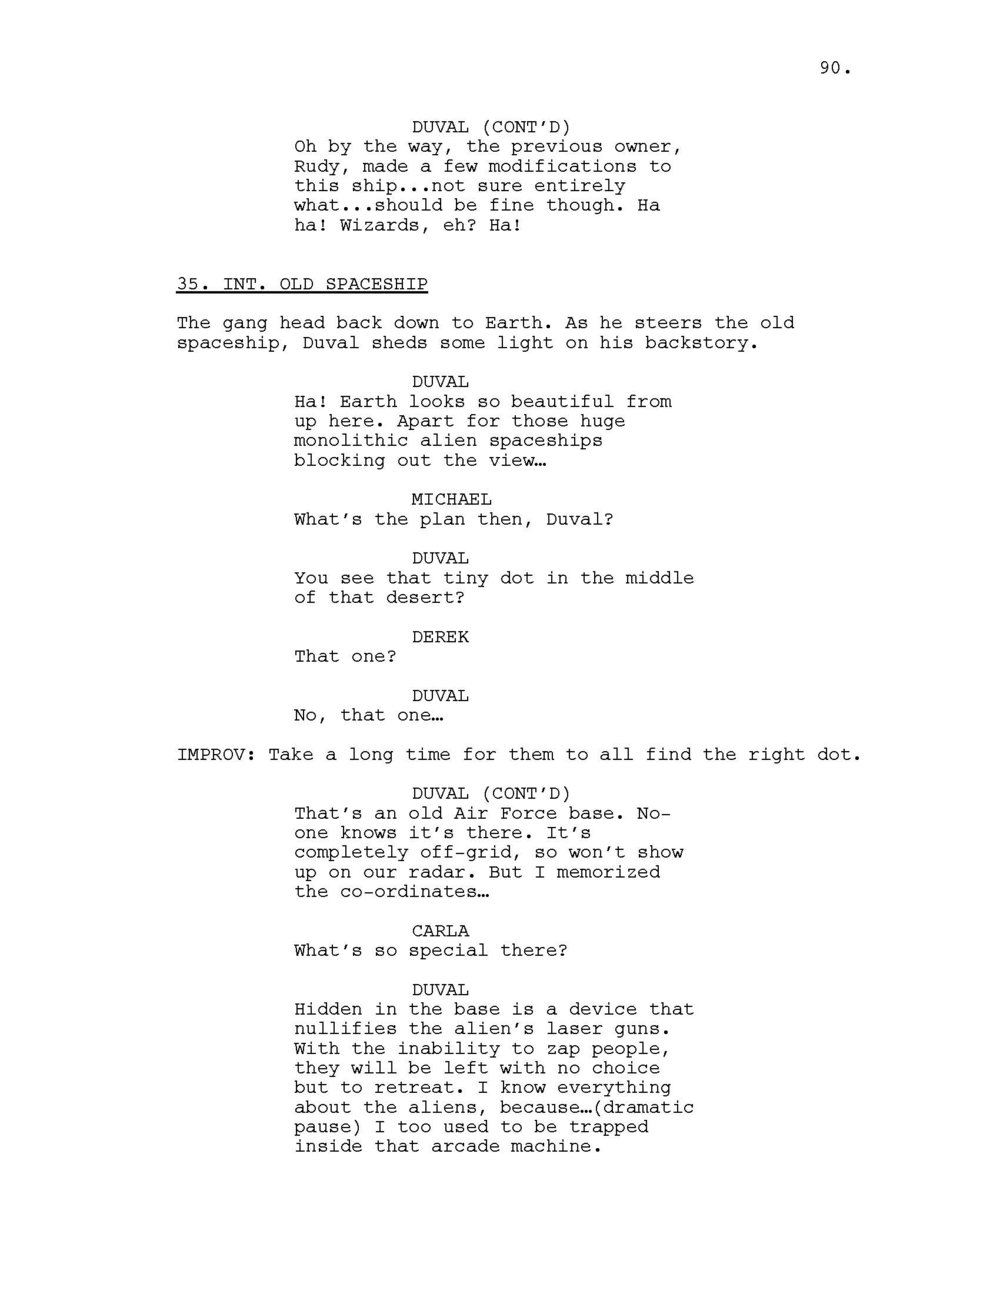 INVISIBLE WORLD SCRIPT_Page_091.jpg